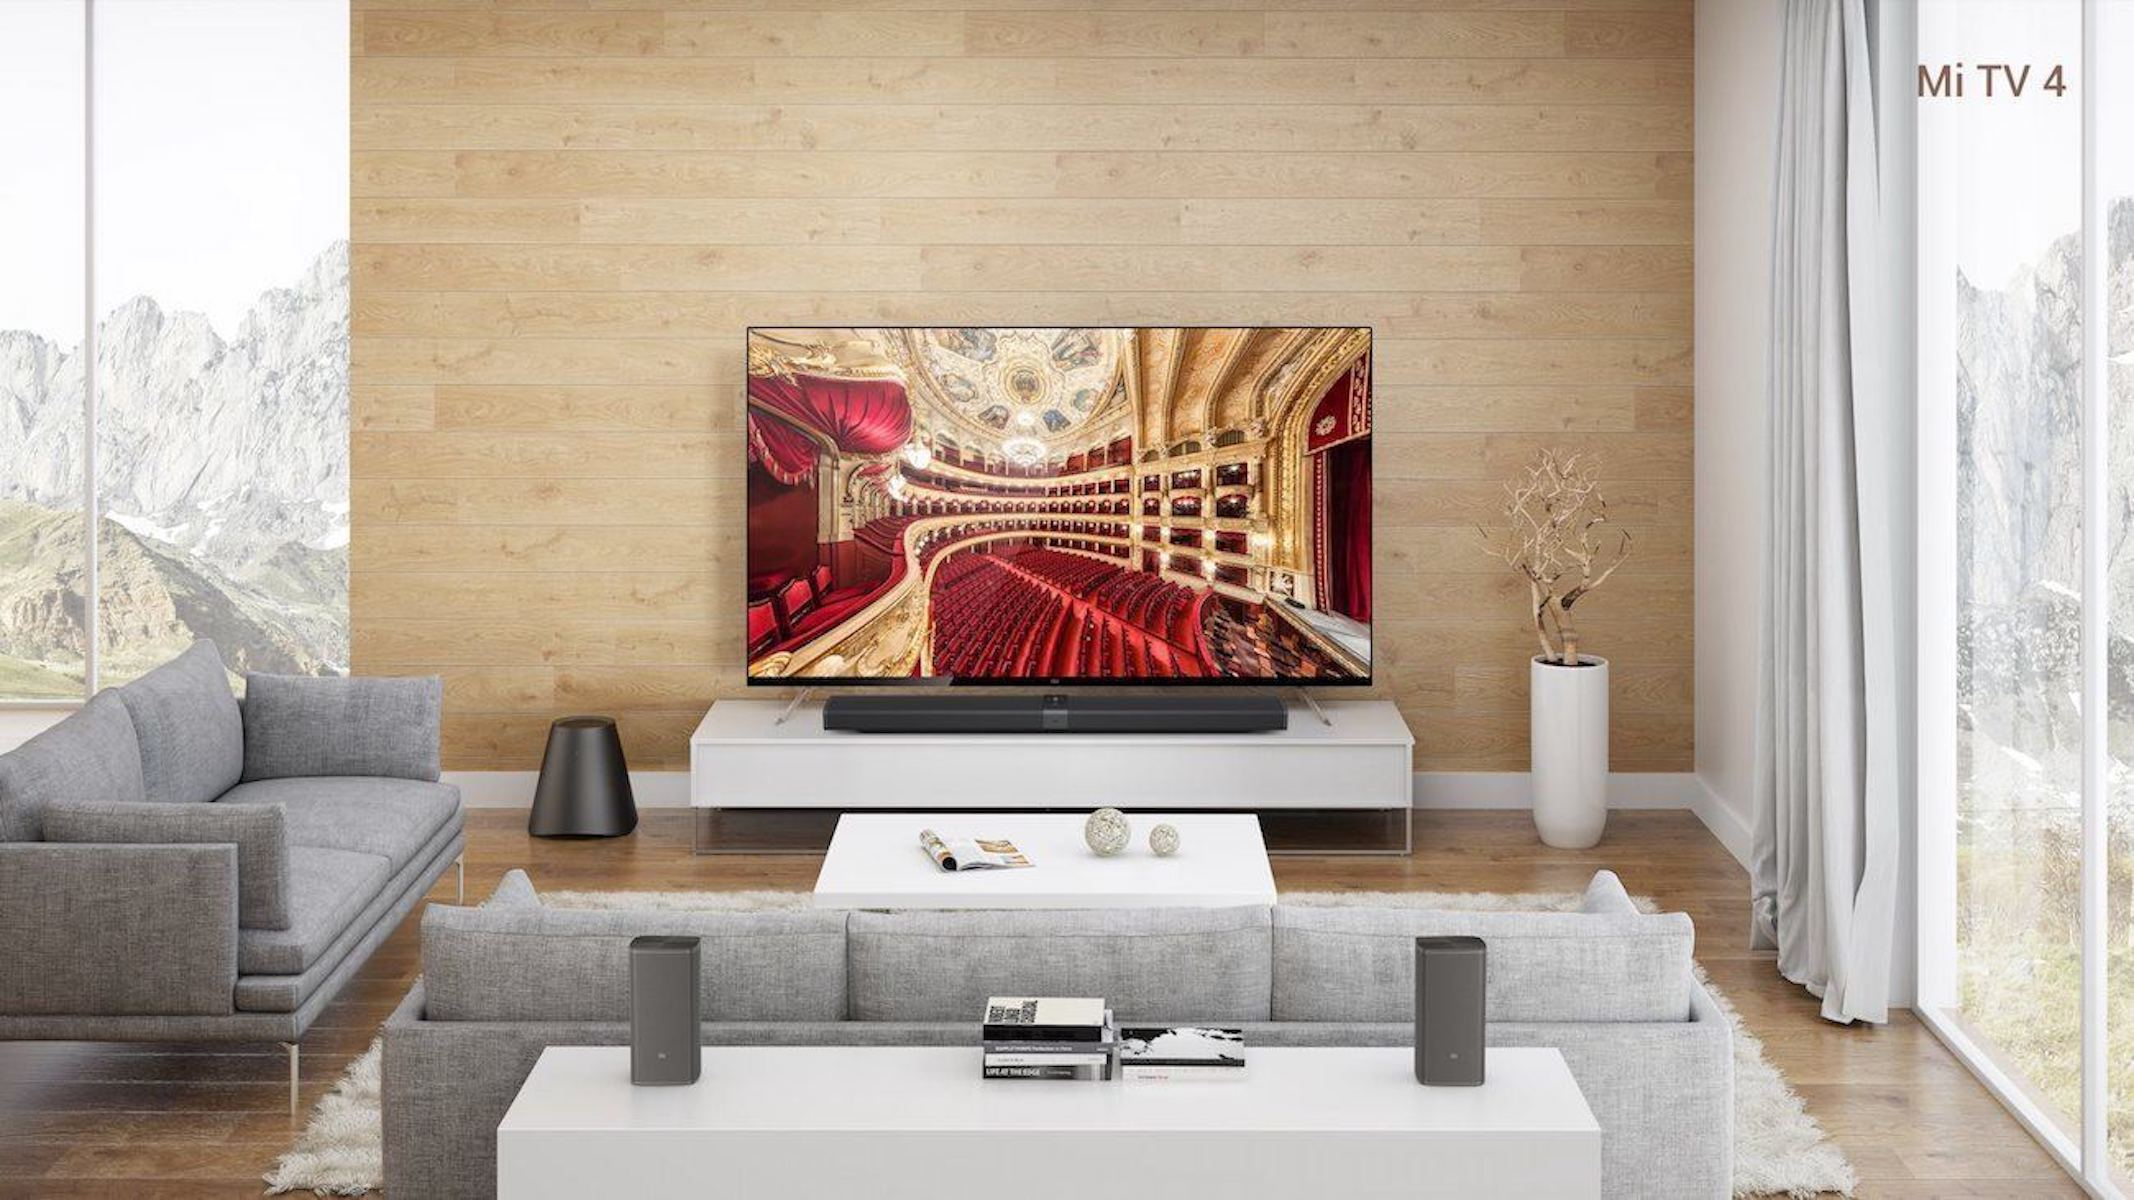 Best Dolby Atmos TVs for your home theater setup